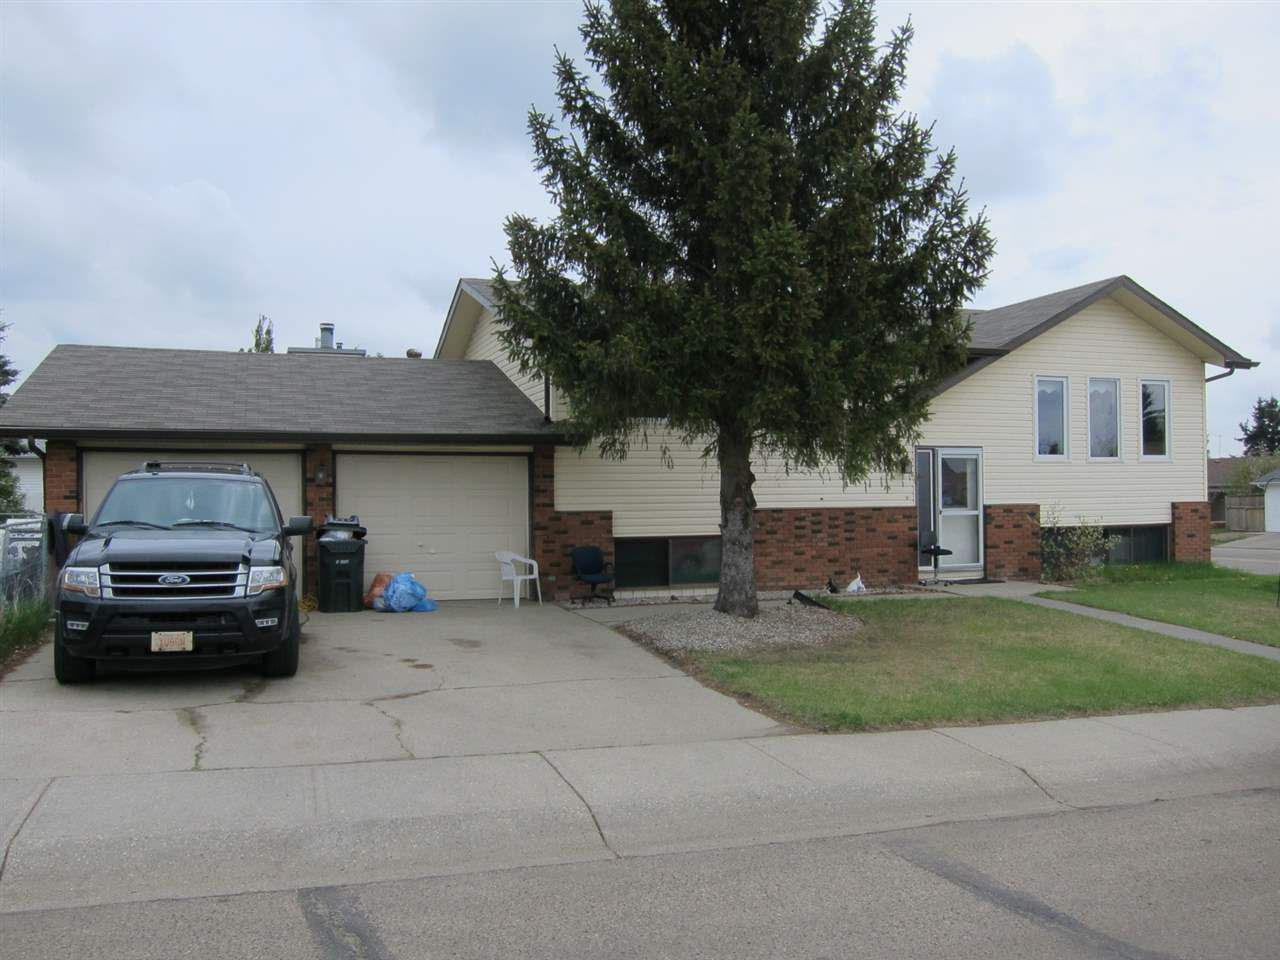 Main Photo: 5615 50 Street: Stony Plain House for sale : MLS®# E4136273